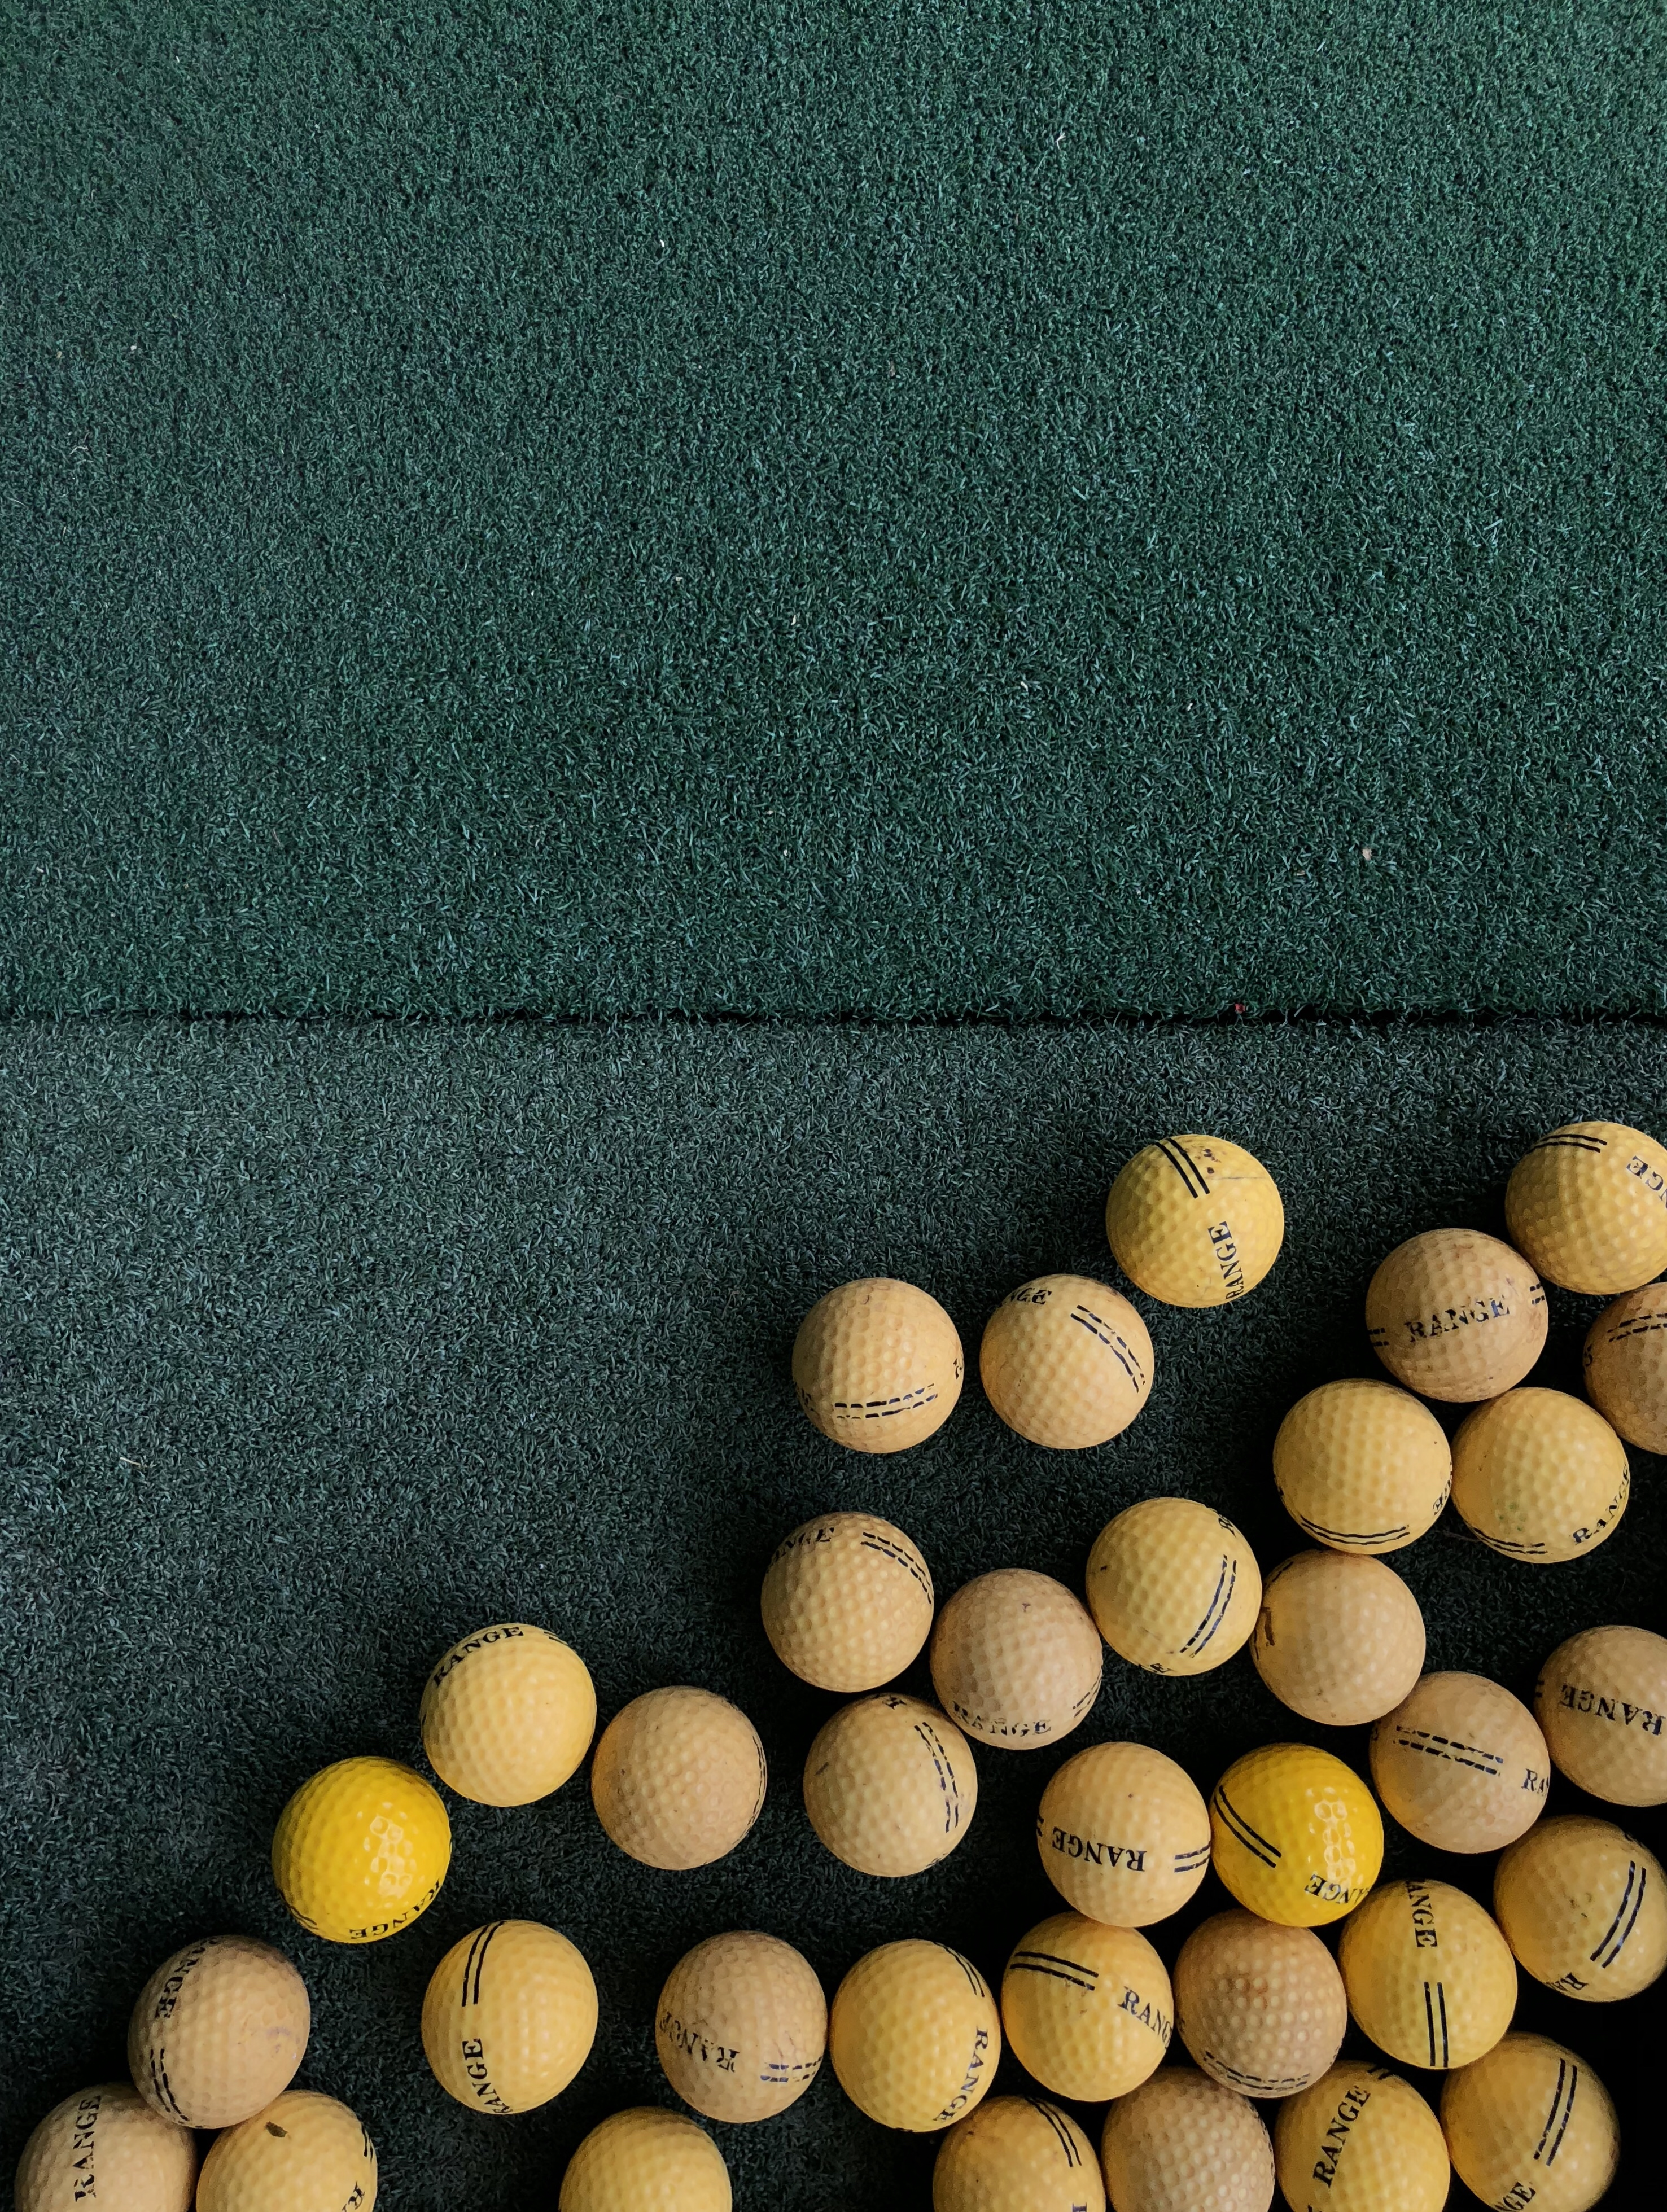 50782 download wallpaper Sports, Golf, Balls, Lawn screensavers and pictures for free